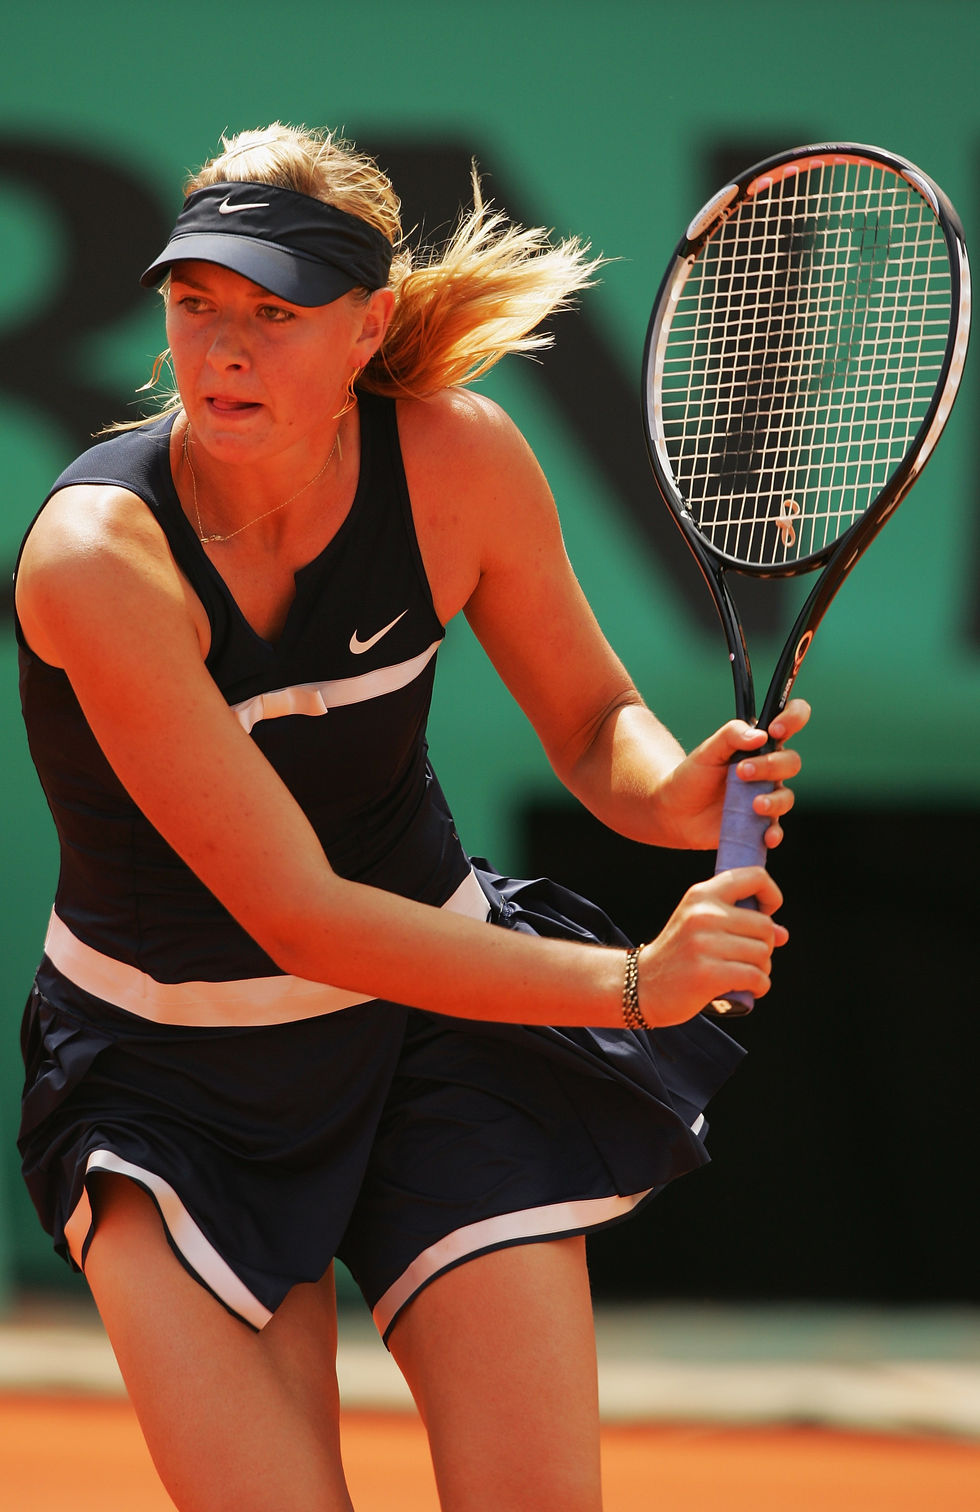 maria-sharapova-2008-french-open-at-roland-garros-01